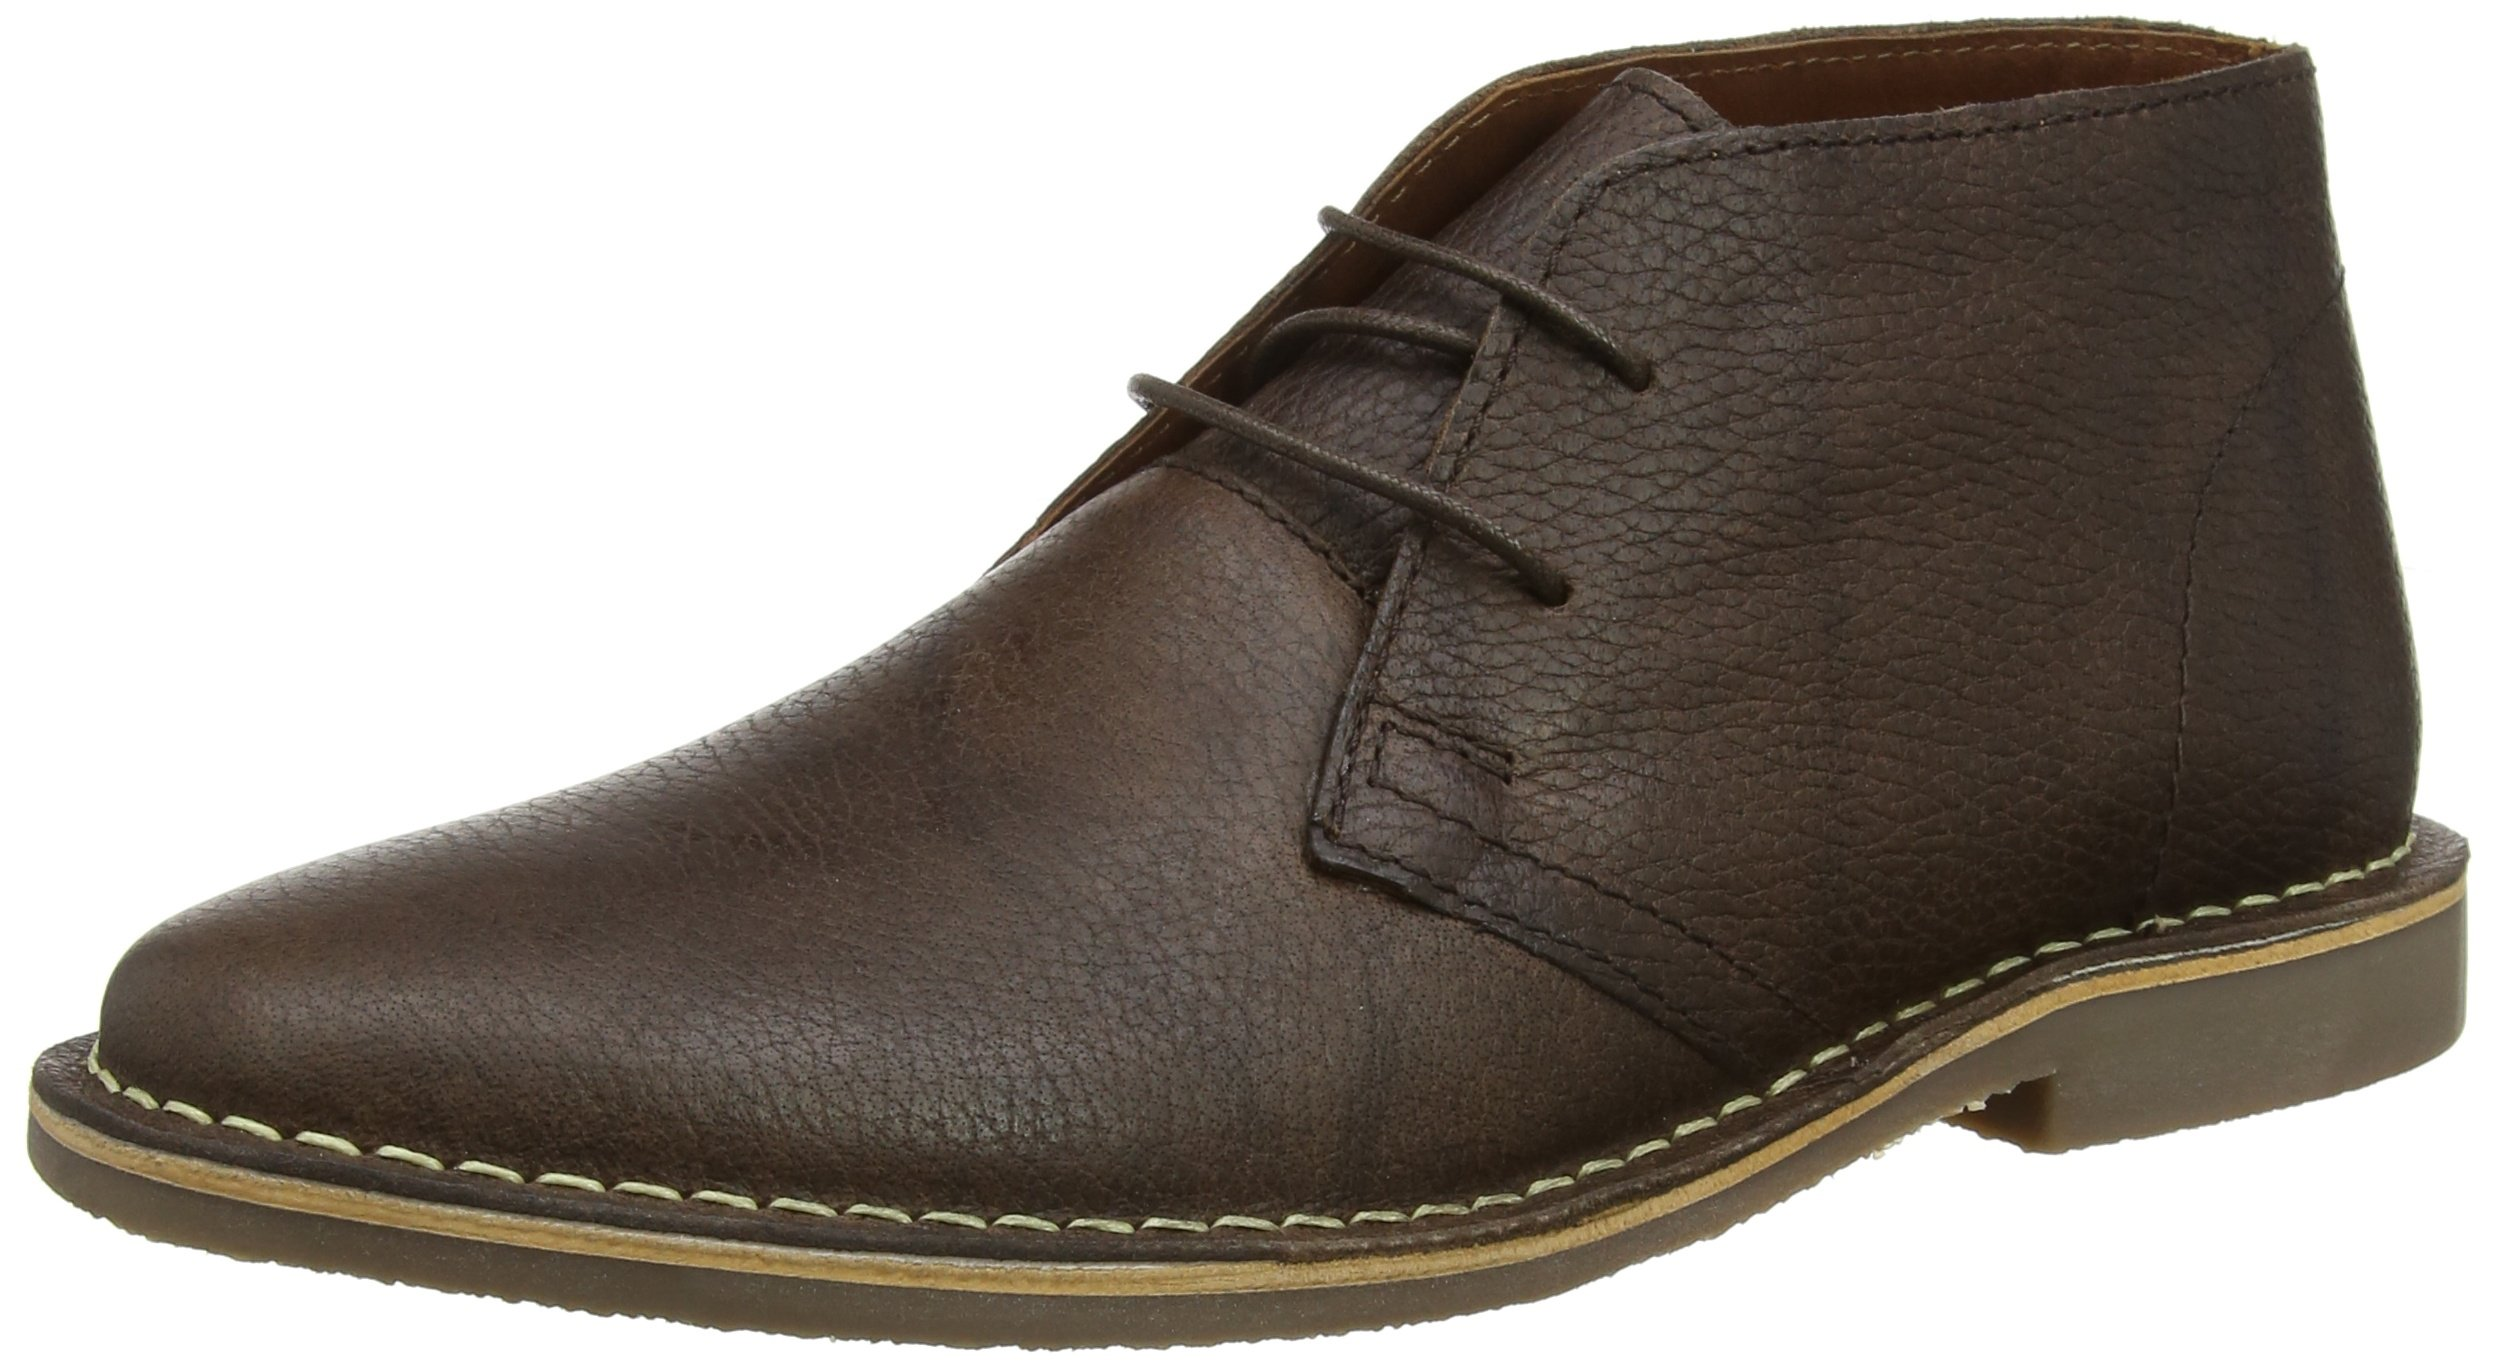 Red Tape Gobi Milled Leather Tan or Brown Mens Lace Desert Chelsea Boots UK 7-11